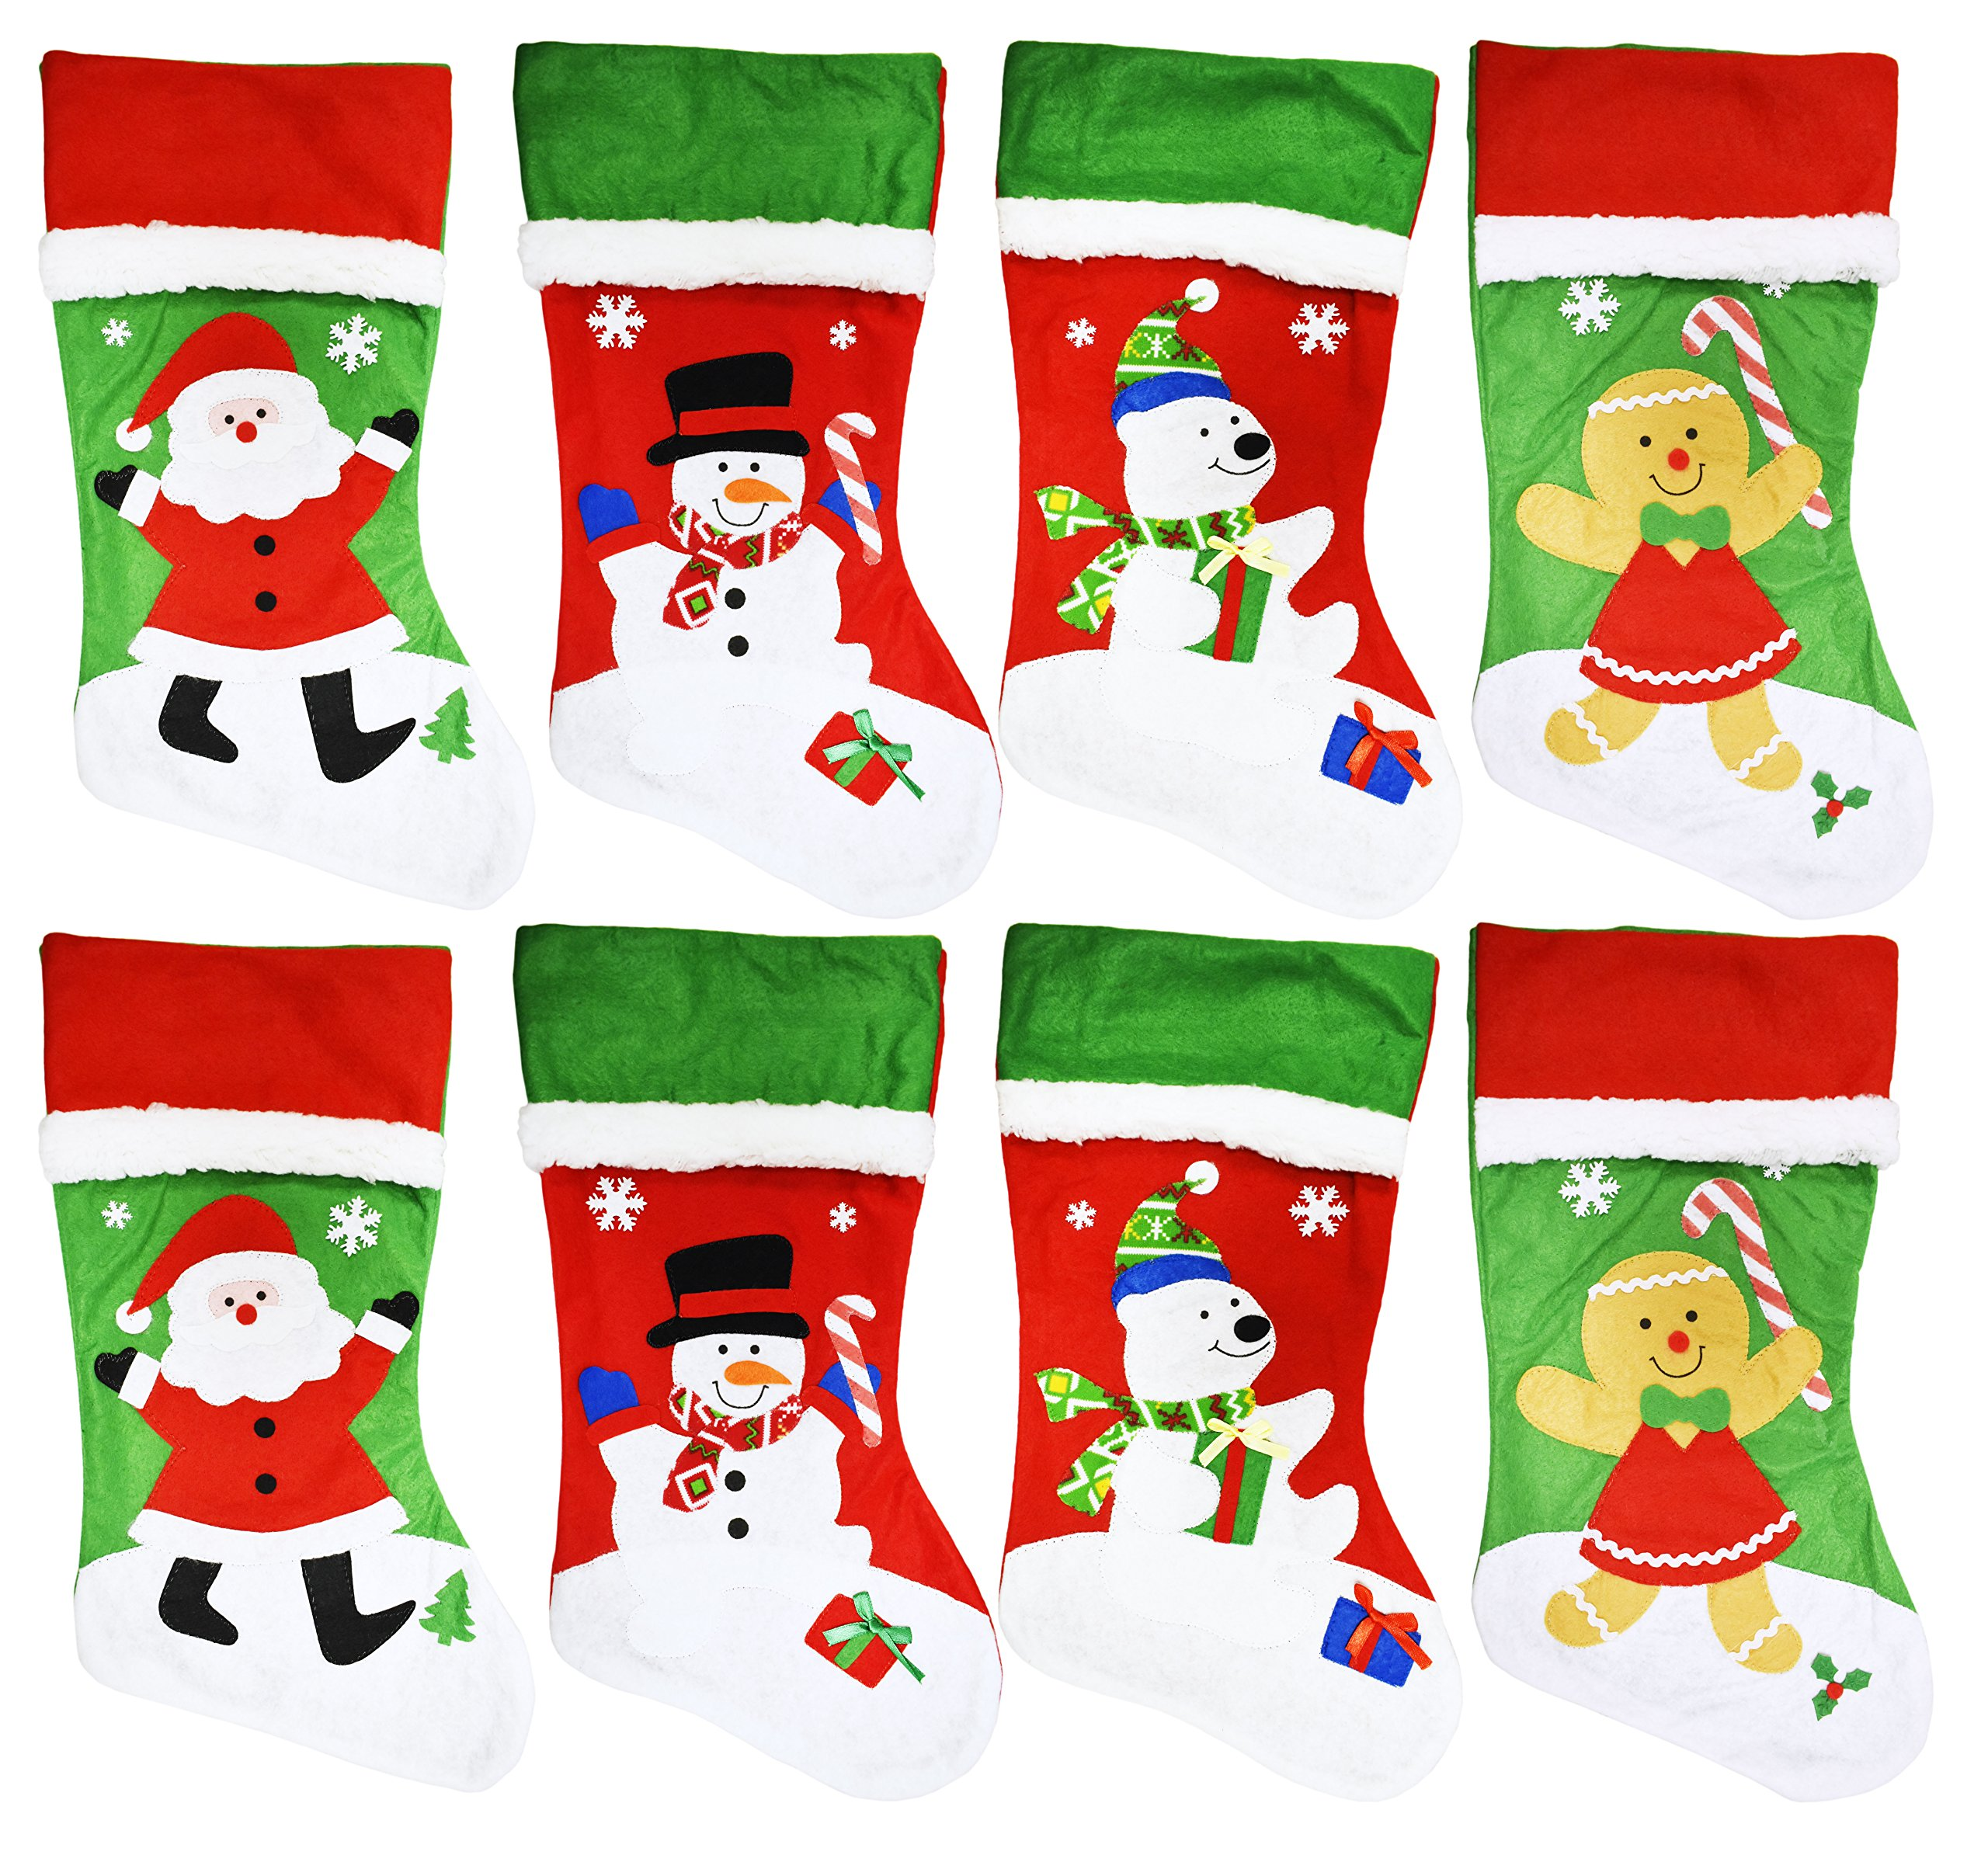 Black Duck Brand Set of 8 Christmas Holiday Embroidered Felt Stockings - 18'' - Hanging Loop - Perfect for any Family on Christmas!